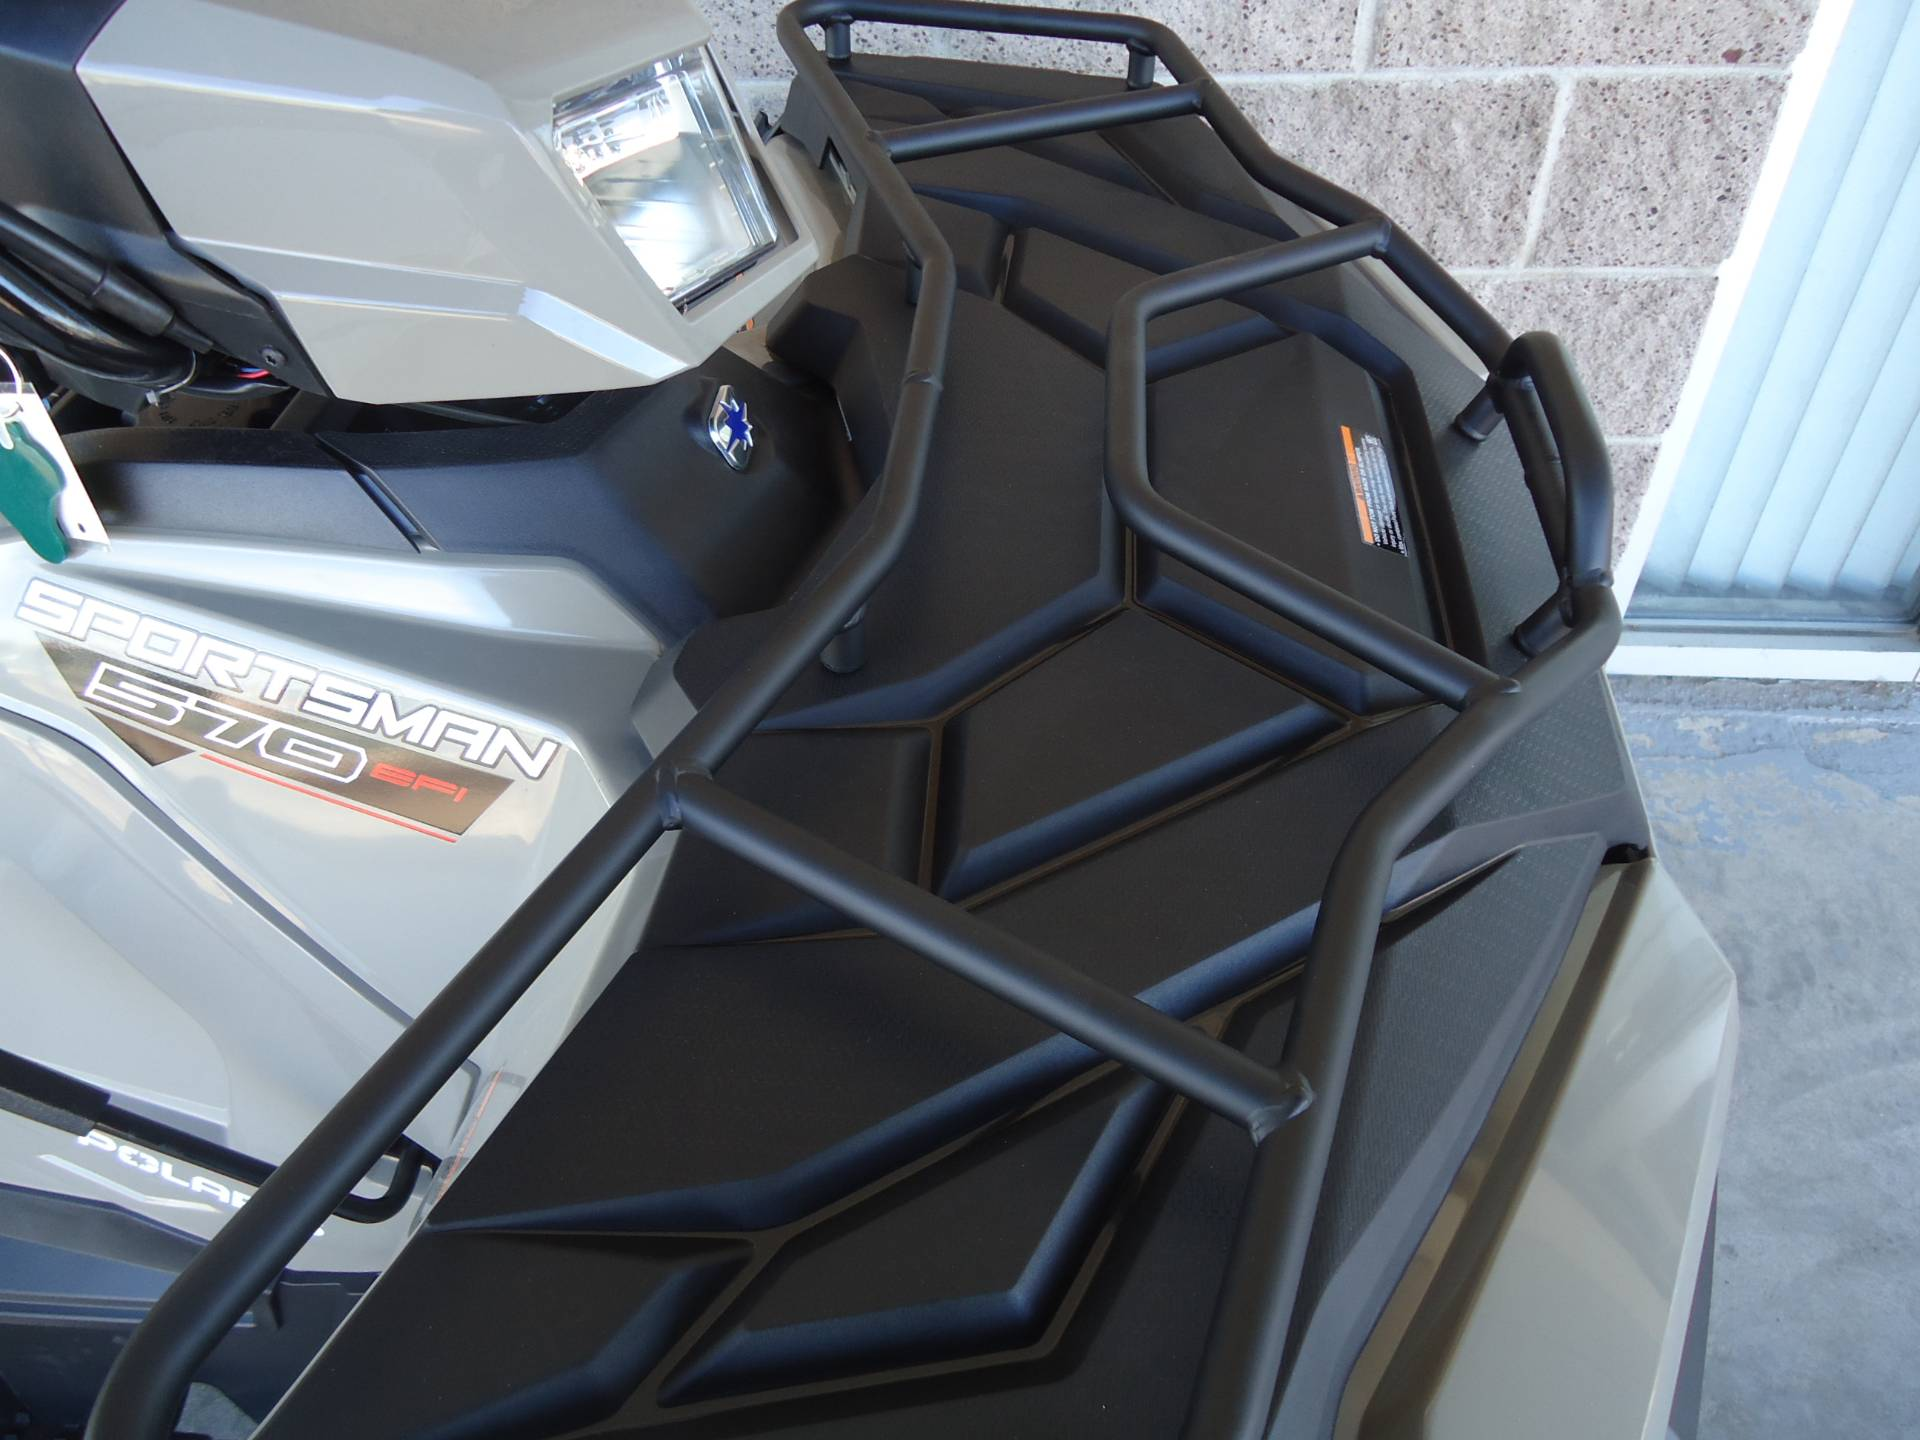 2021 Polaris Sportsman 570 in Denver, Colorado - Photo 10